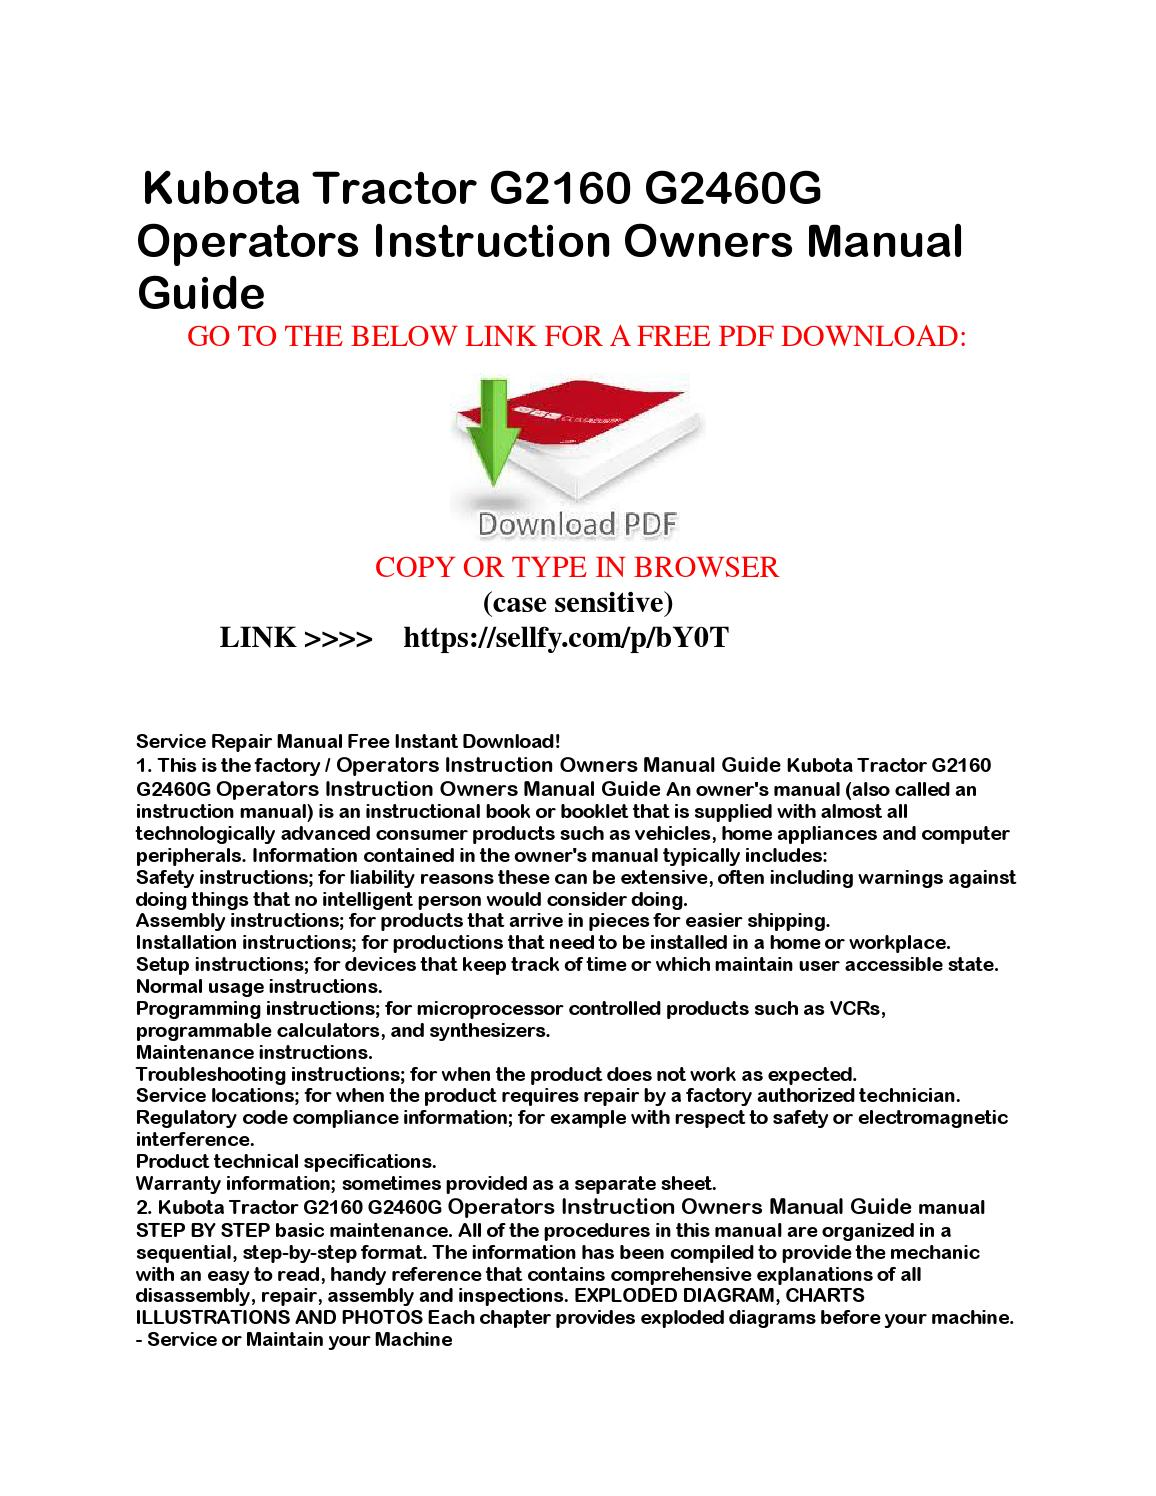 Lawn Tractor Manual Guide